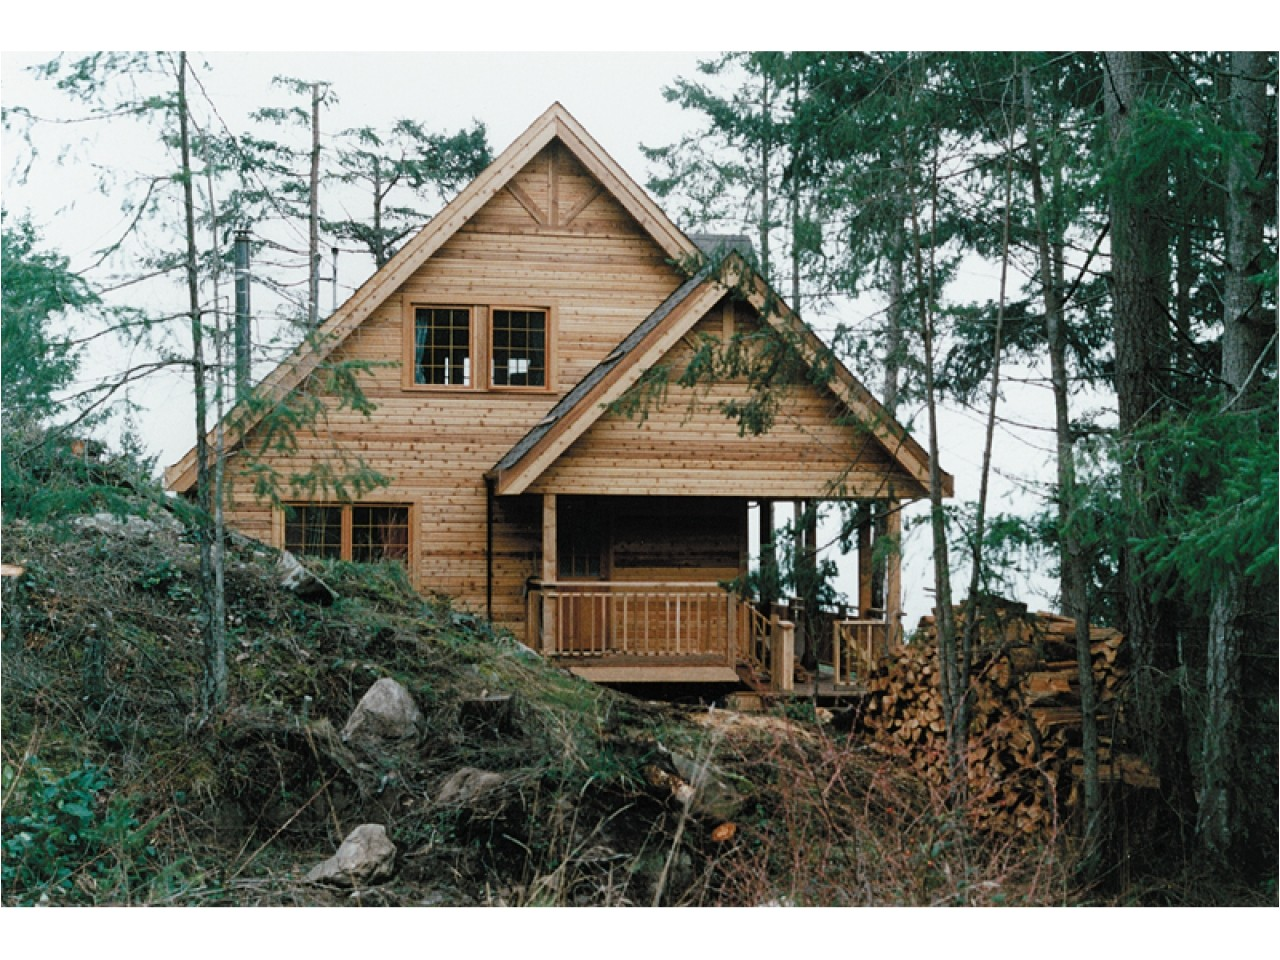 3c6161f653136a35 small rustic lake cabin plans small log cabins